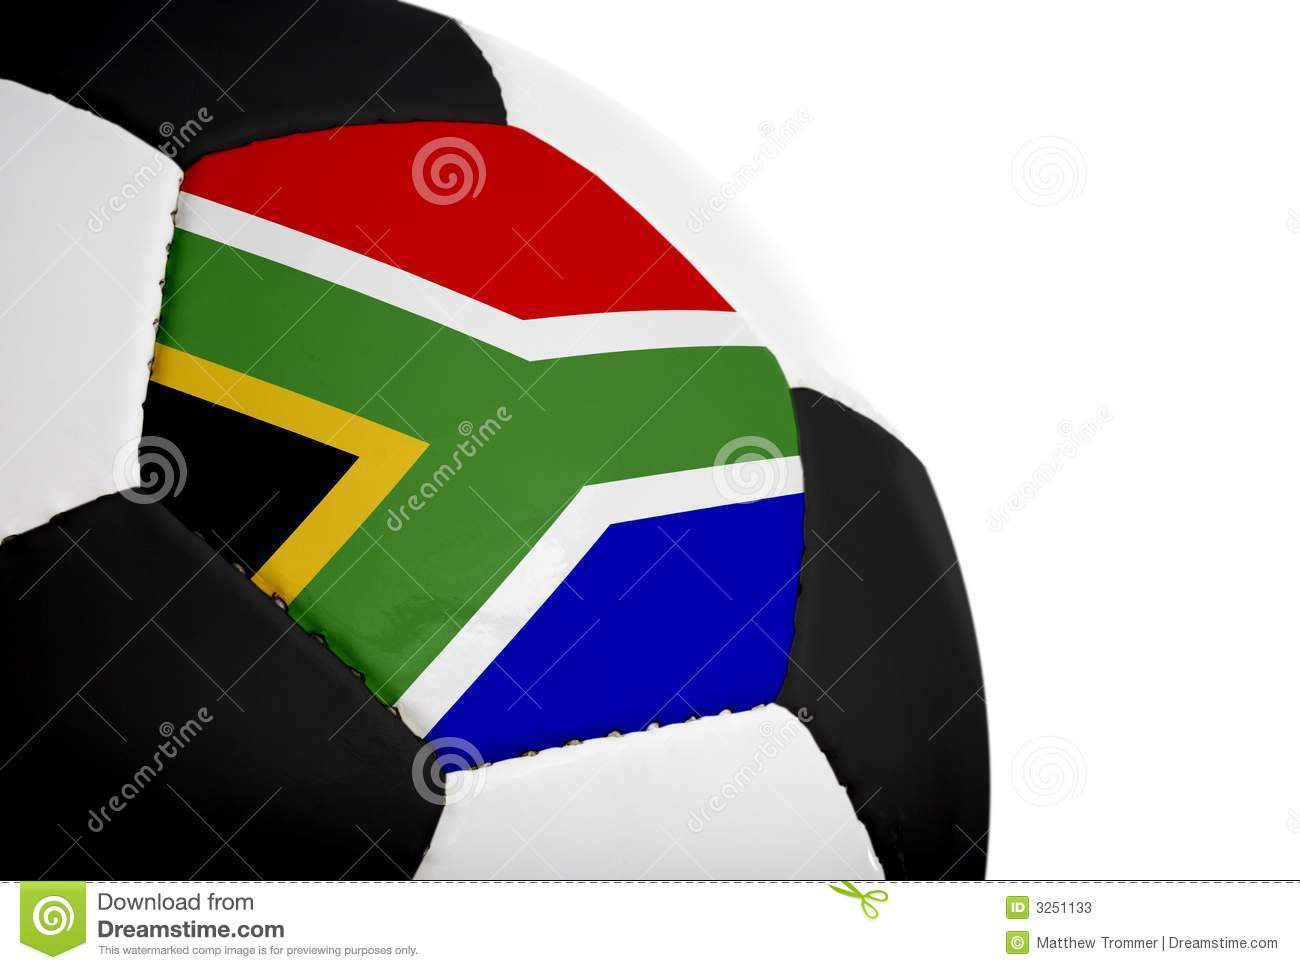 South african flag painted/projected onto a football (soccer ball